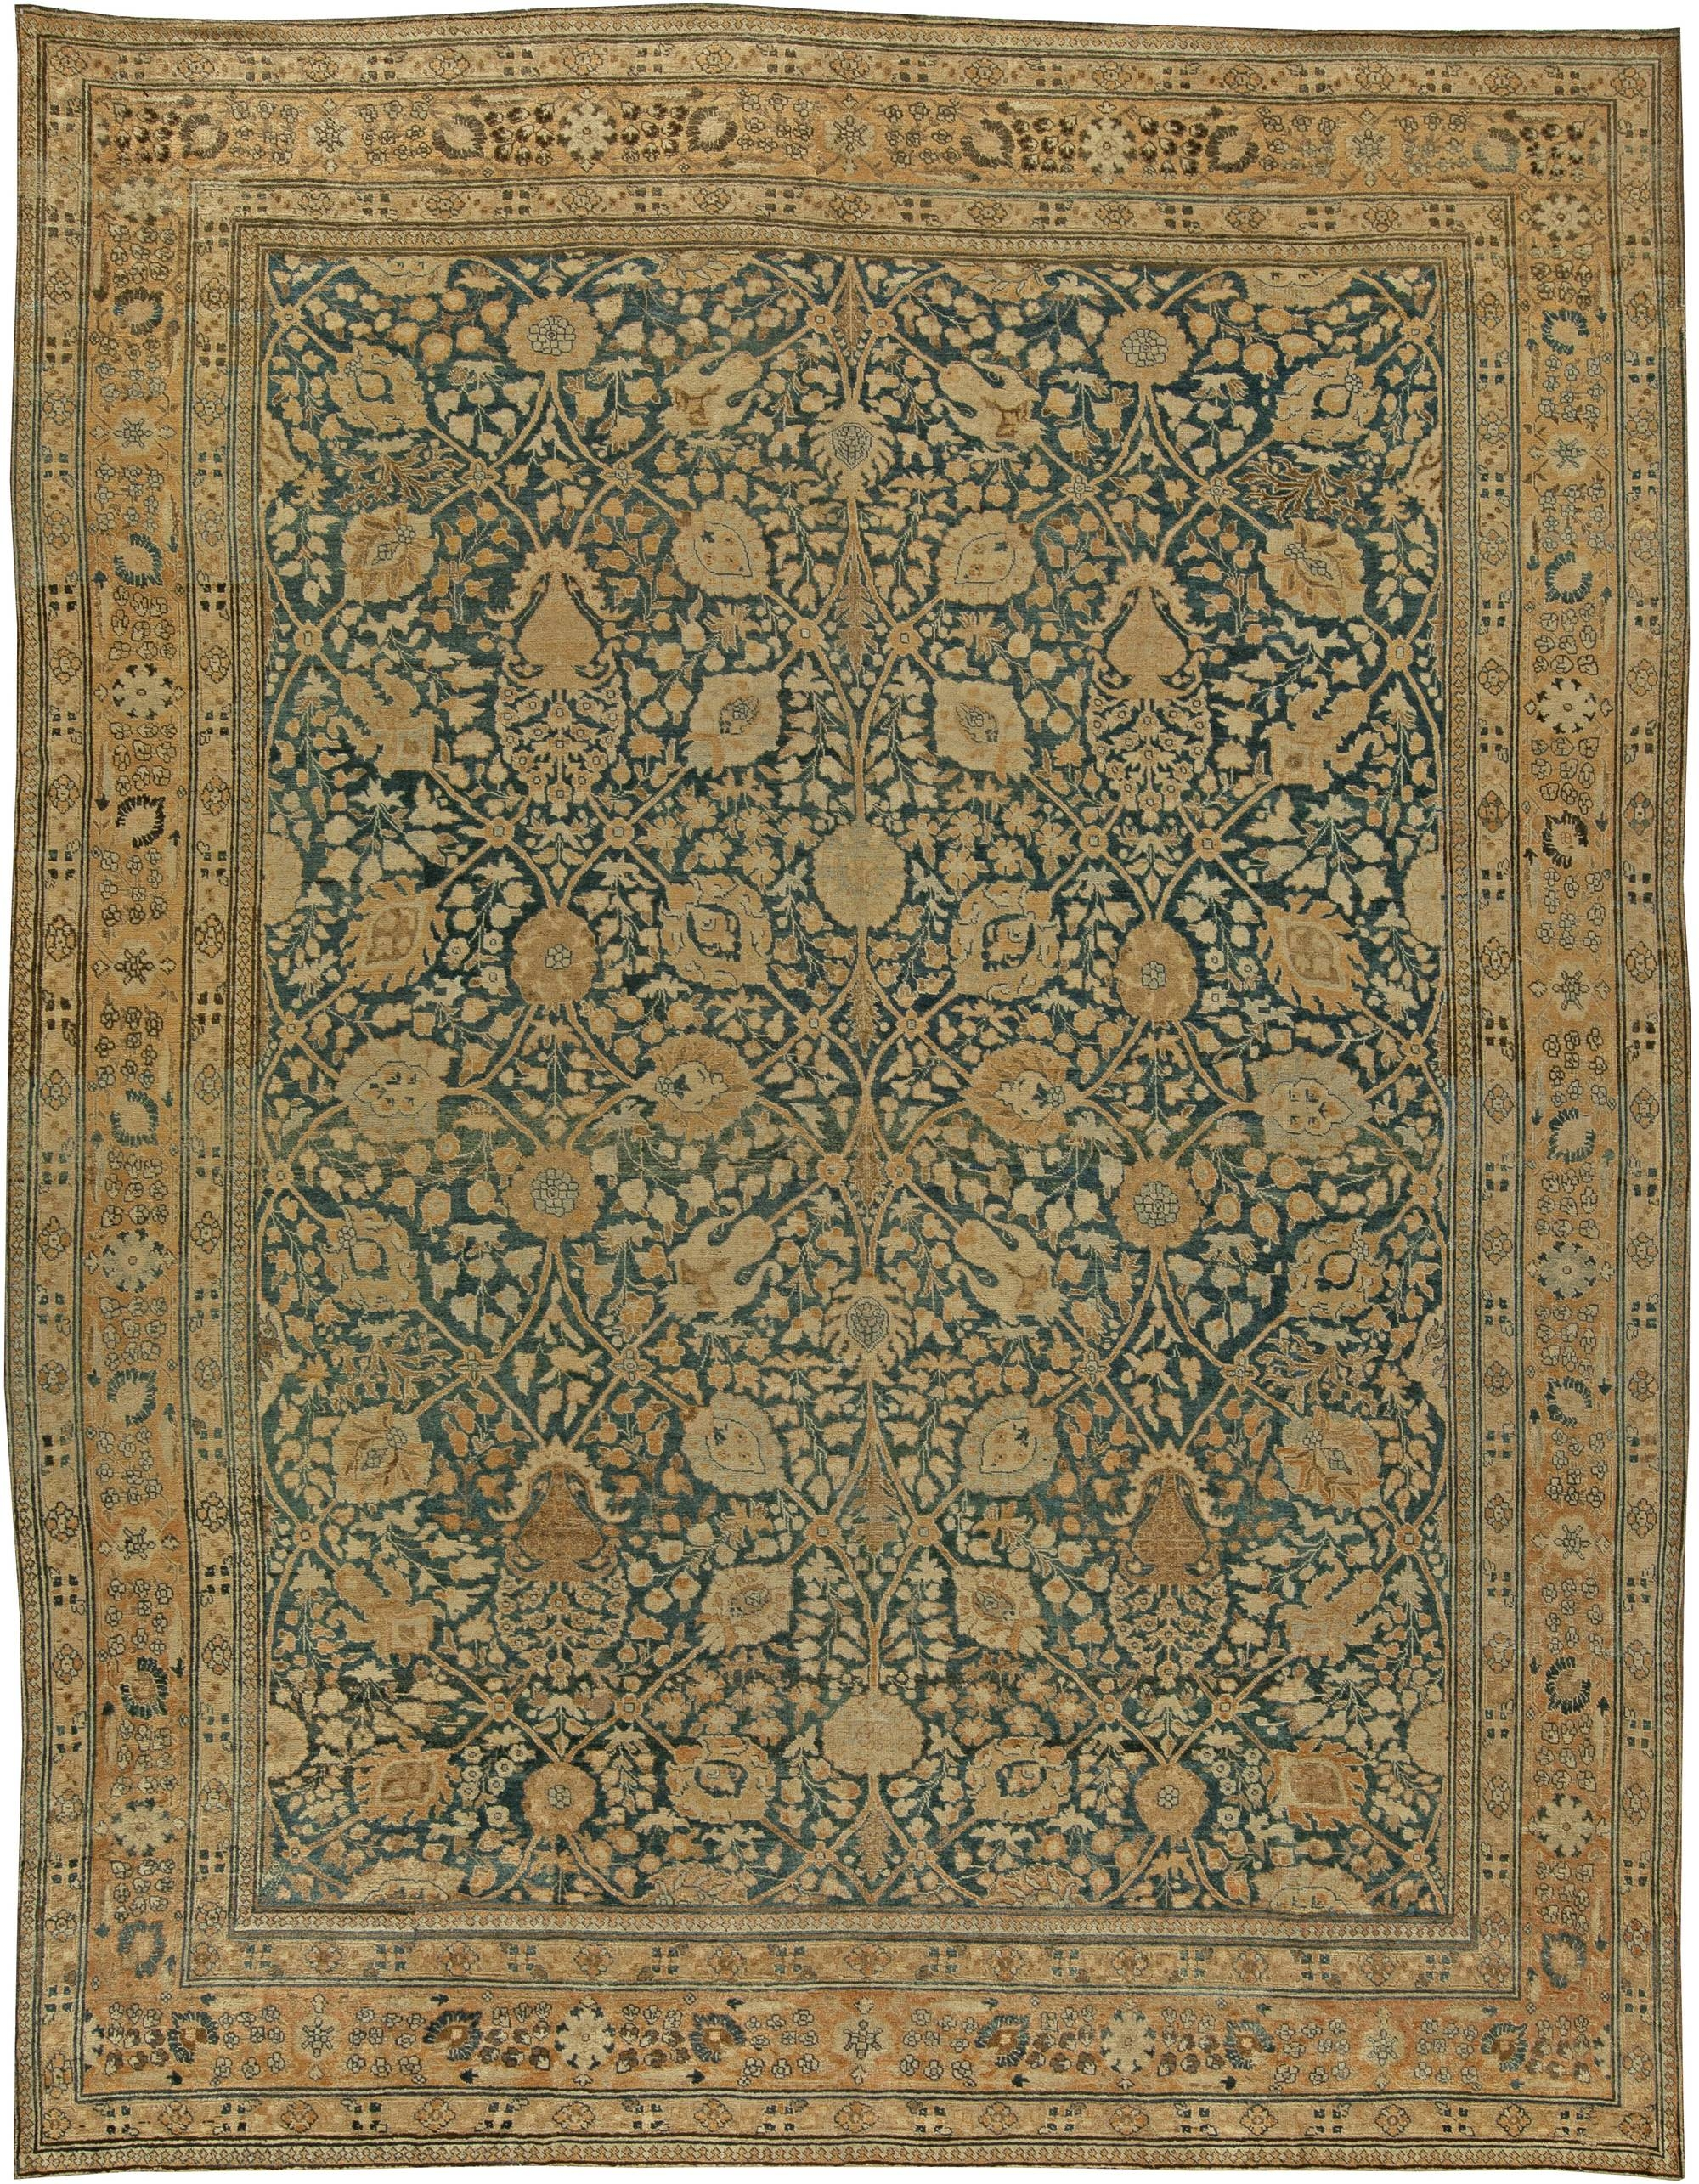 Antique Persian Rugs And Antique Oriental Rugs Regarding Oriental Persian Rugs (View 12 of 15)